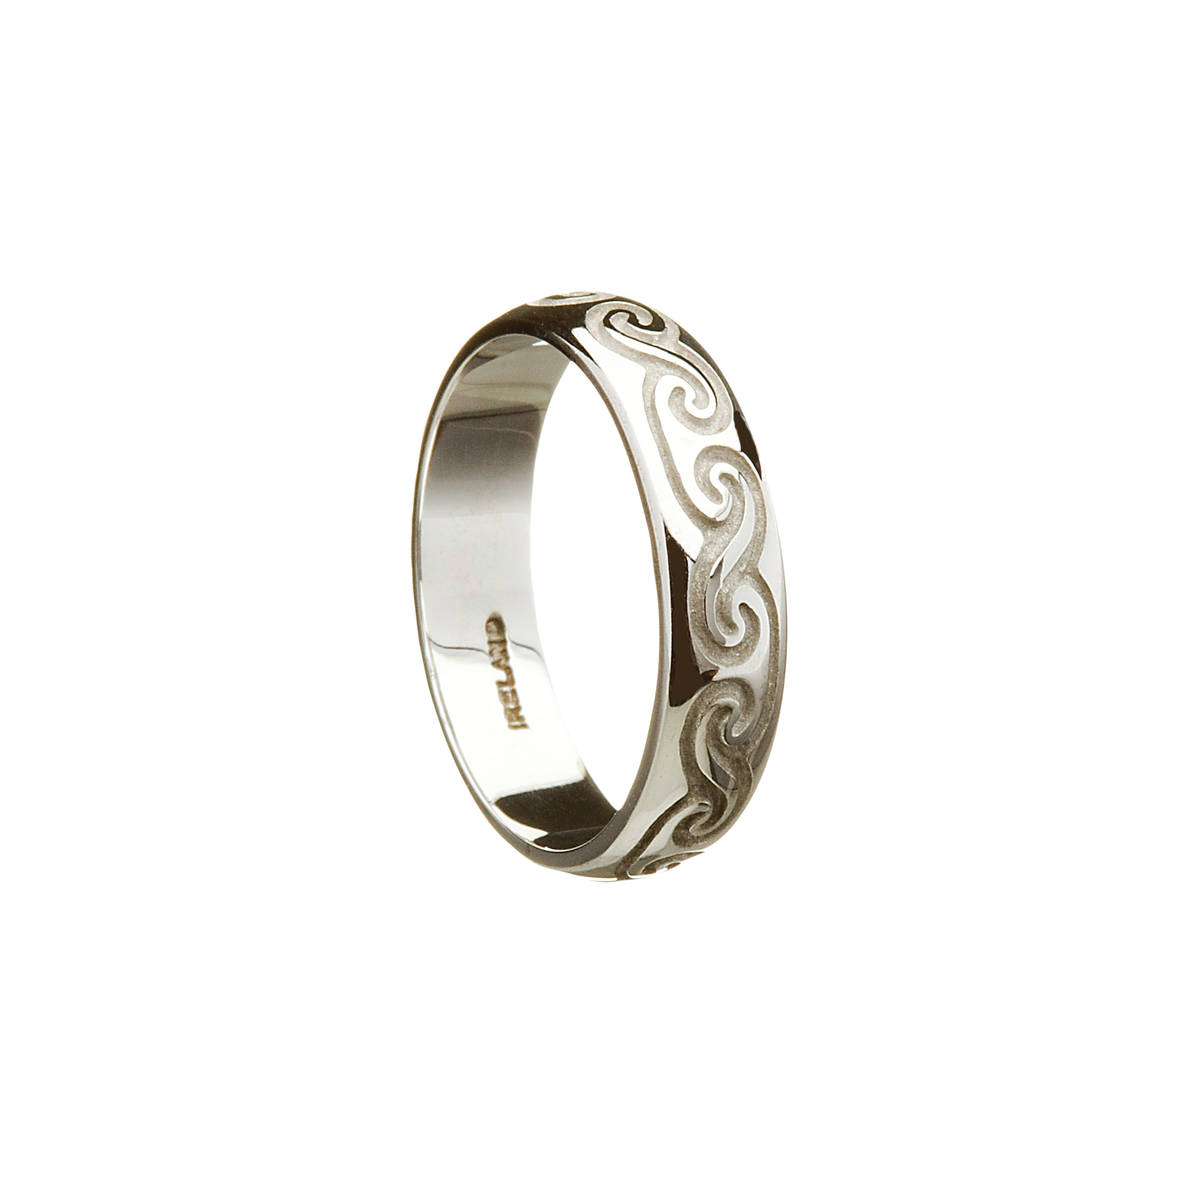 Exquisite platinum man'sCeltic knot etchedring.5.6 mm wide approx.